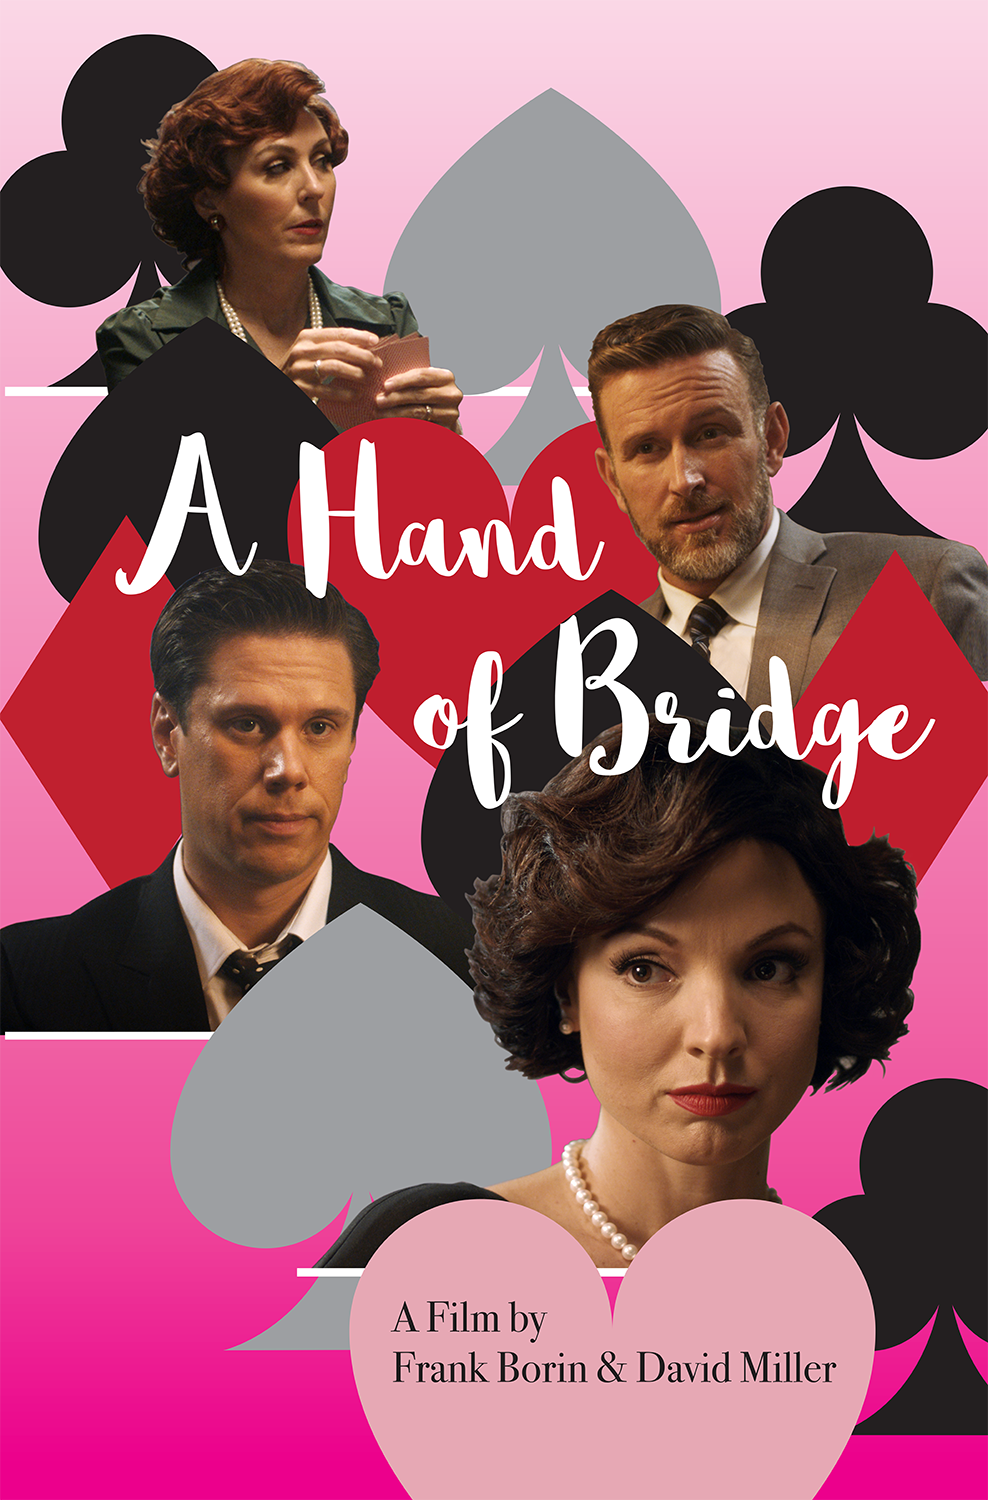 A Hand of Bridge-Poster.png